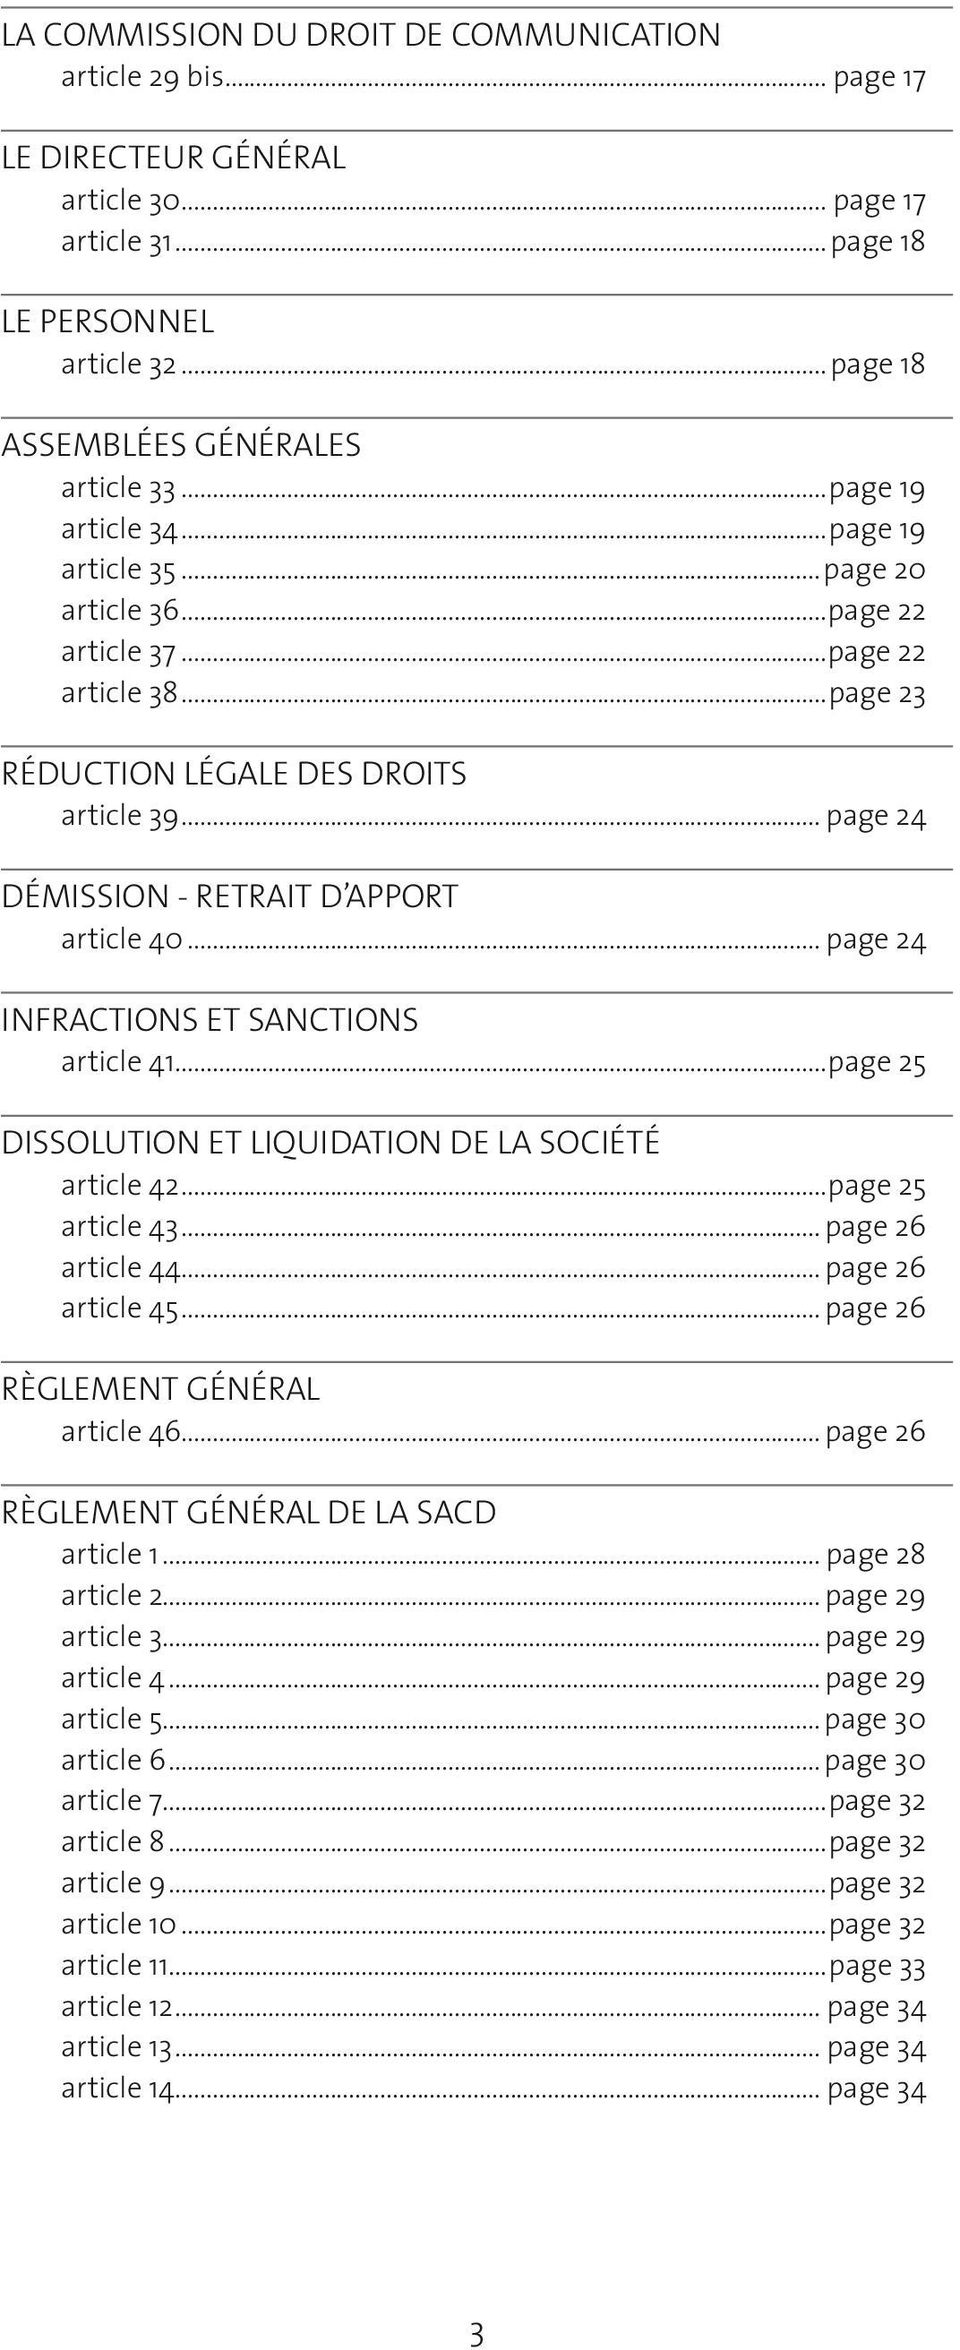 .. page 24 DÉMISSION - RETRAIT D APPORT article 40... page 24 INFRACTIONS ET SANCTIONS article 41...page 25 Dissolution ET liquidation DE LA SOCIÉTÉ article 42...page 25 article 43.